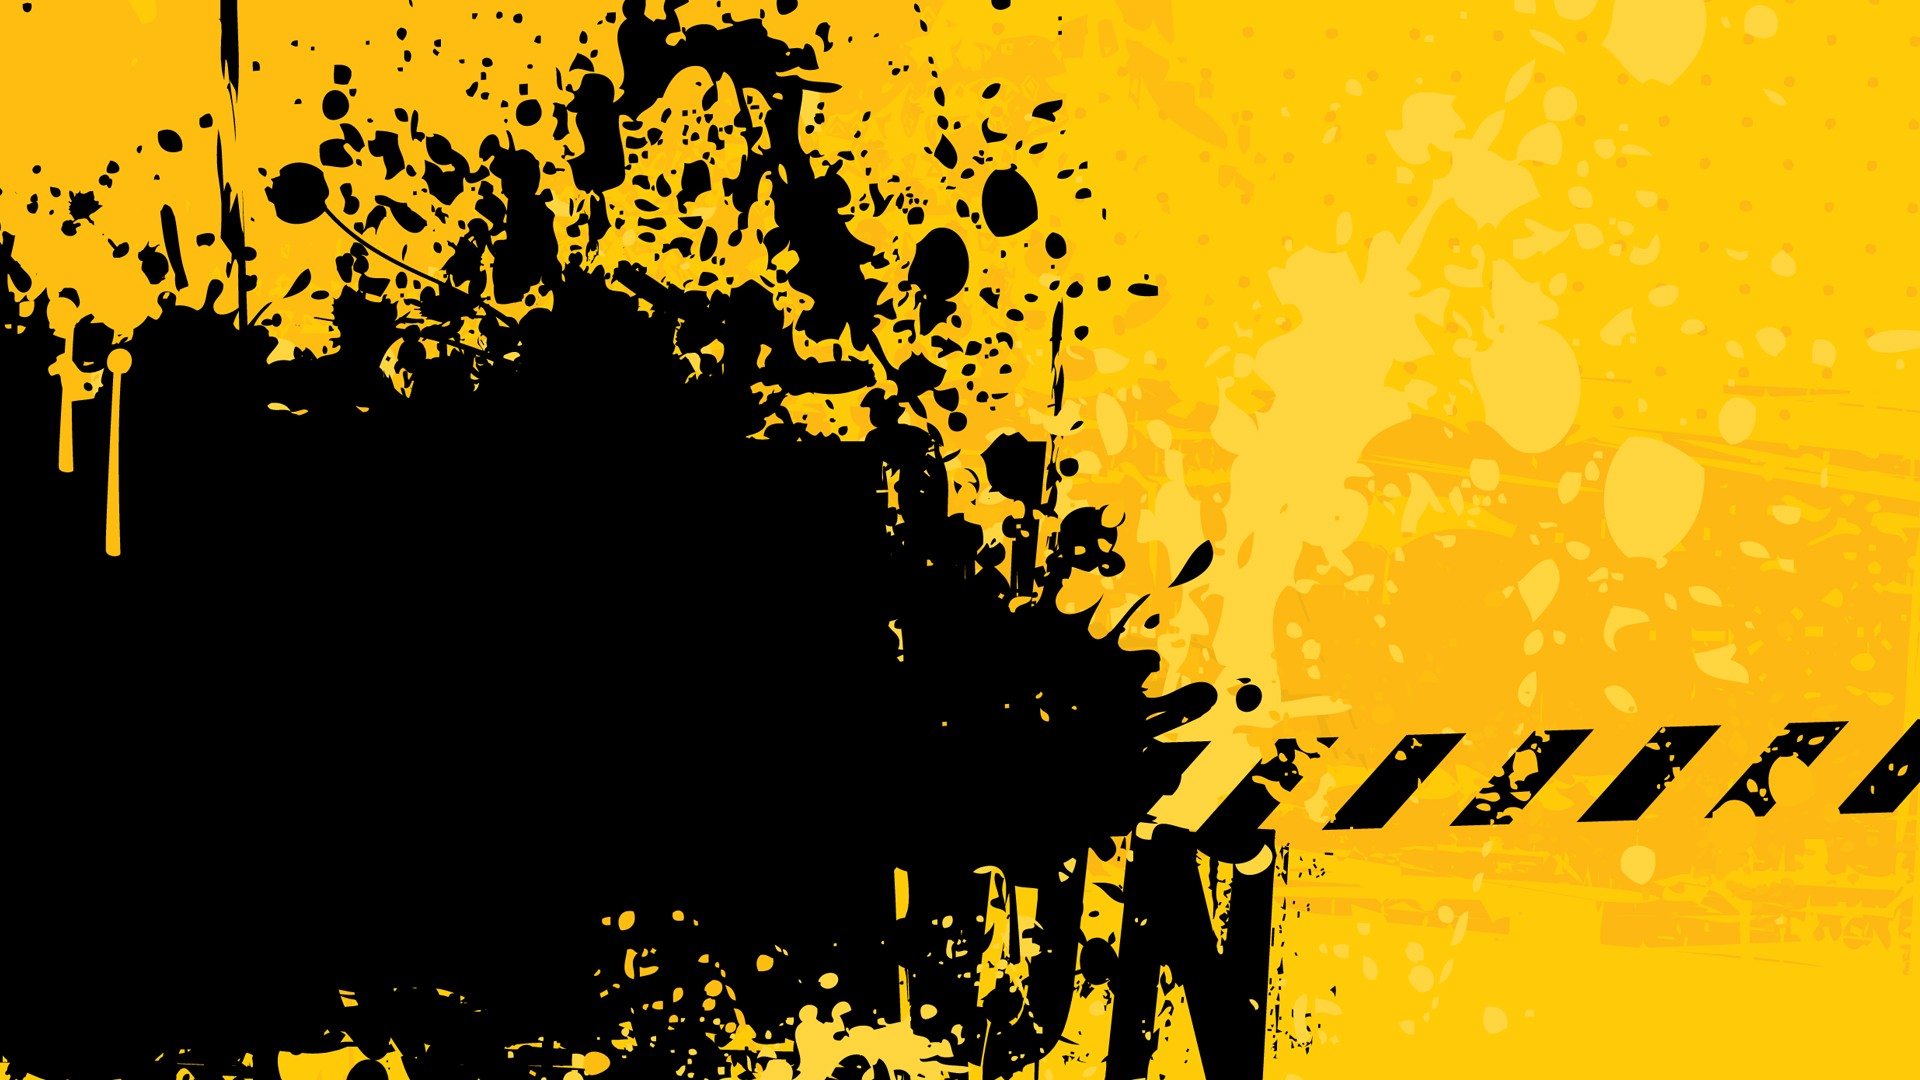 13 Black Abstract Grunge Backgrounds Vector Images